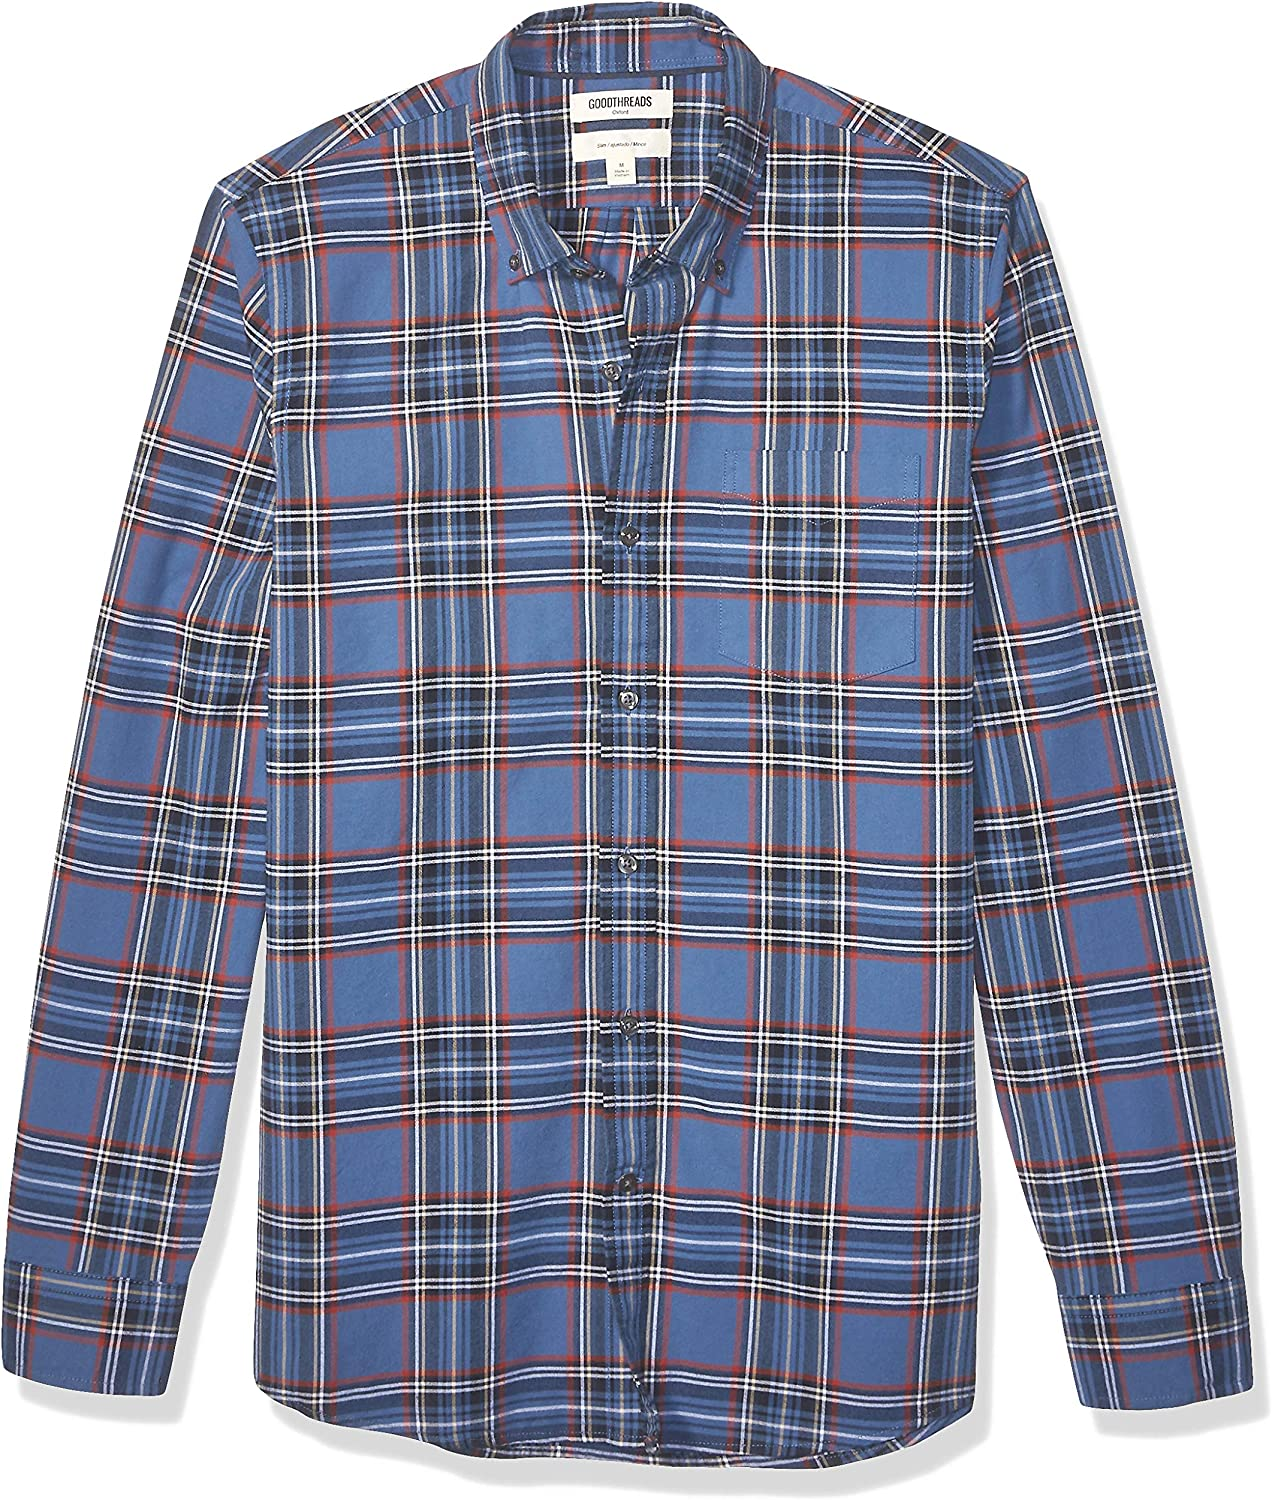 Amazon Brand - Goodthreads Men's Slim-Fit Long-Sleeve Plaid Oxford Shirt